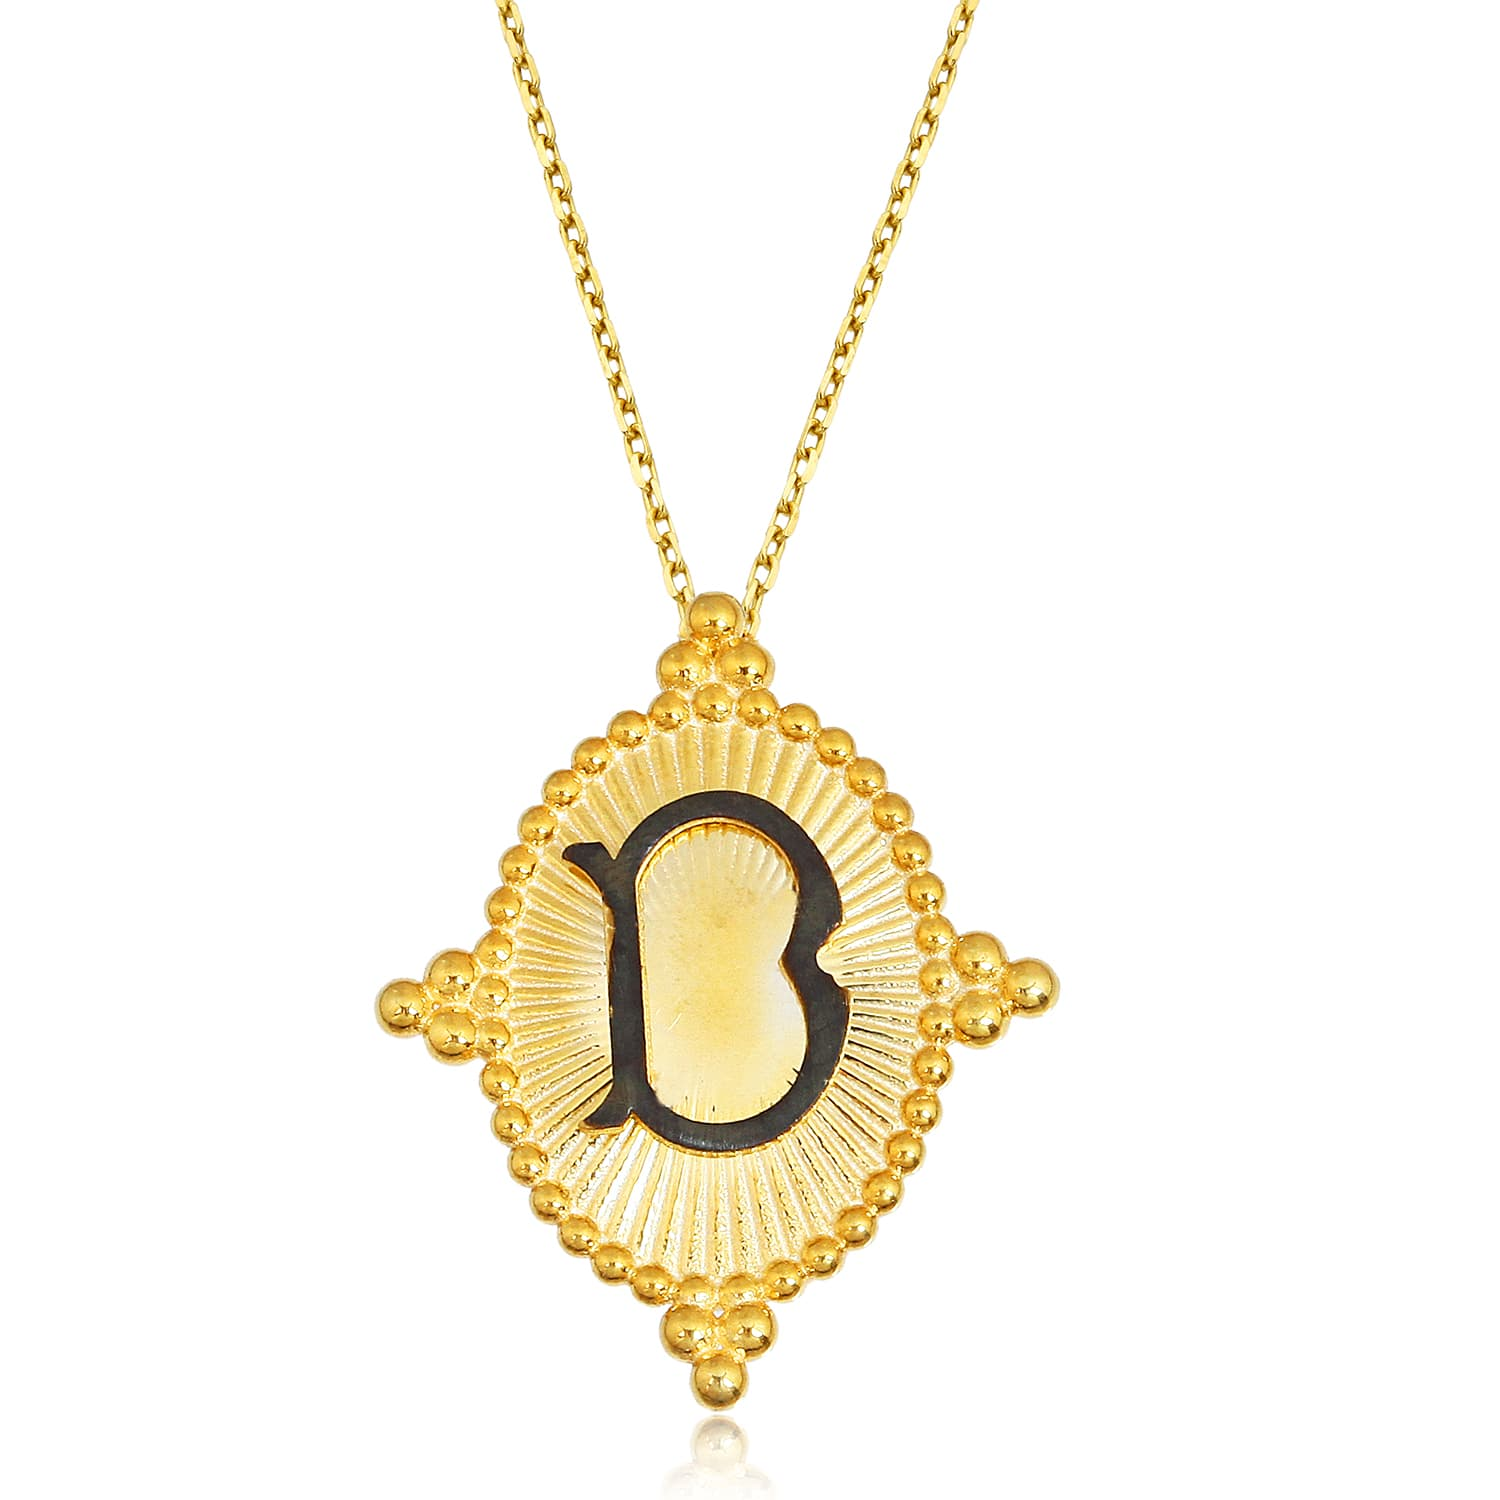 24K gold plated real silver letter D necklace